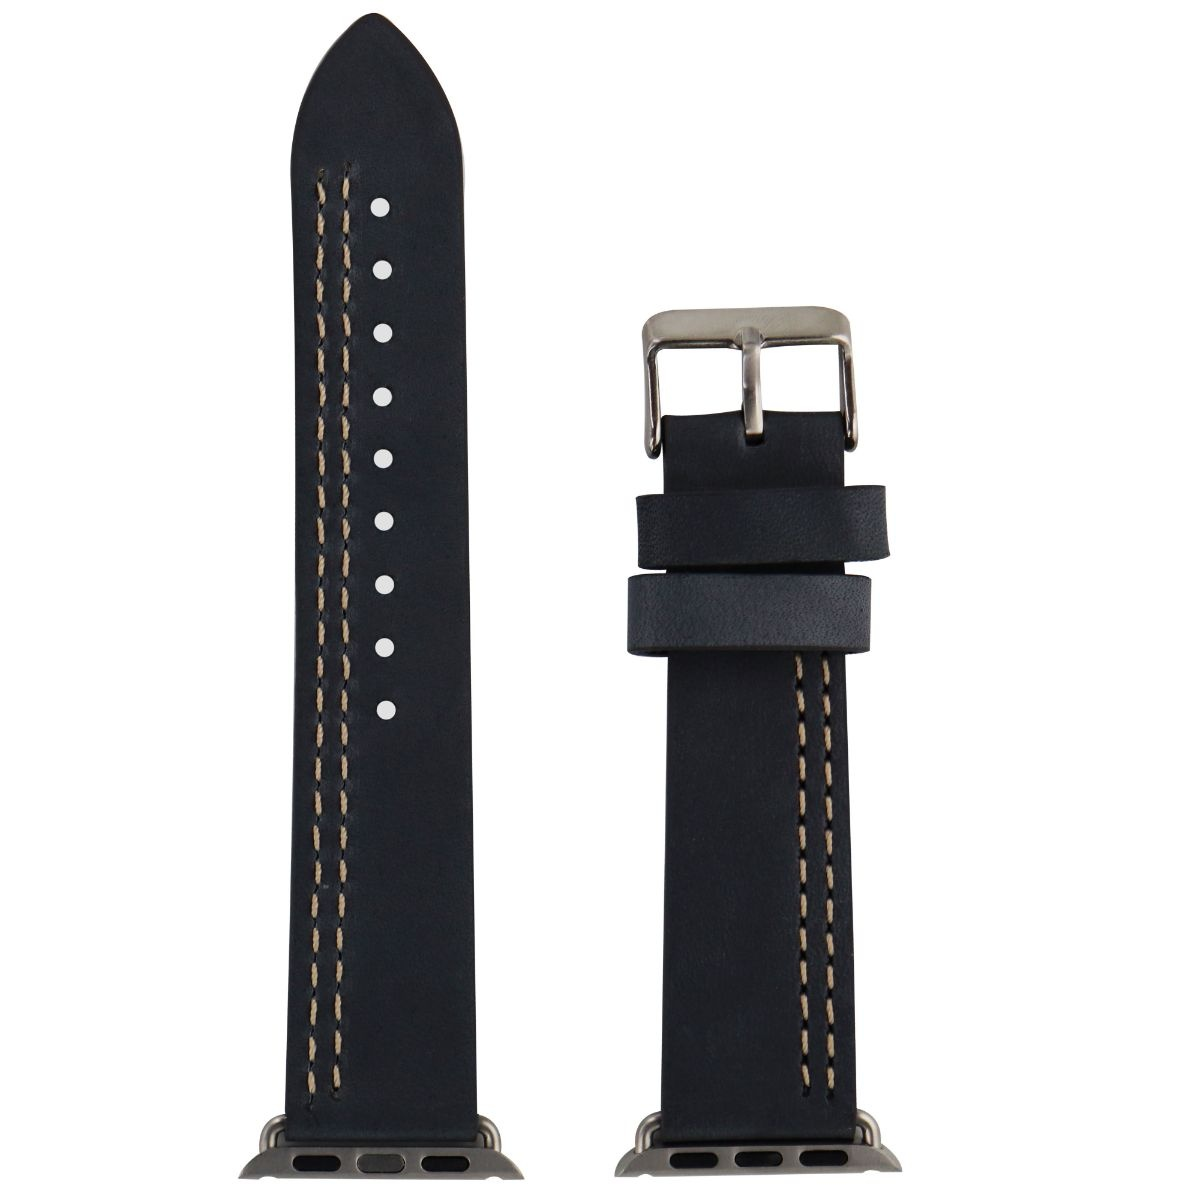 iGear Leather Watch strap for 38mm Apple Watch - Slate Leather / Silver buckle